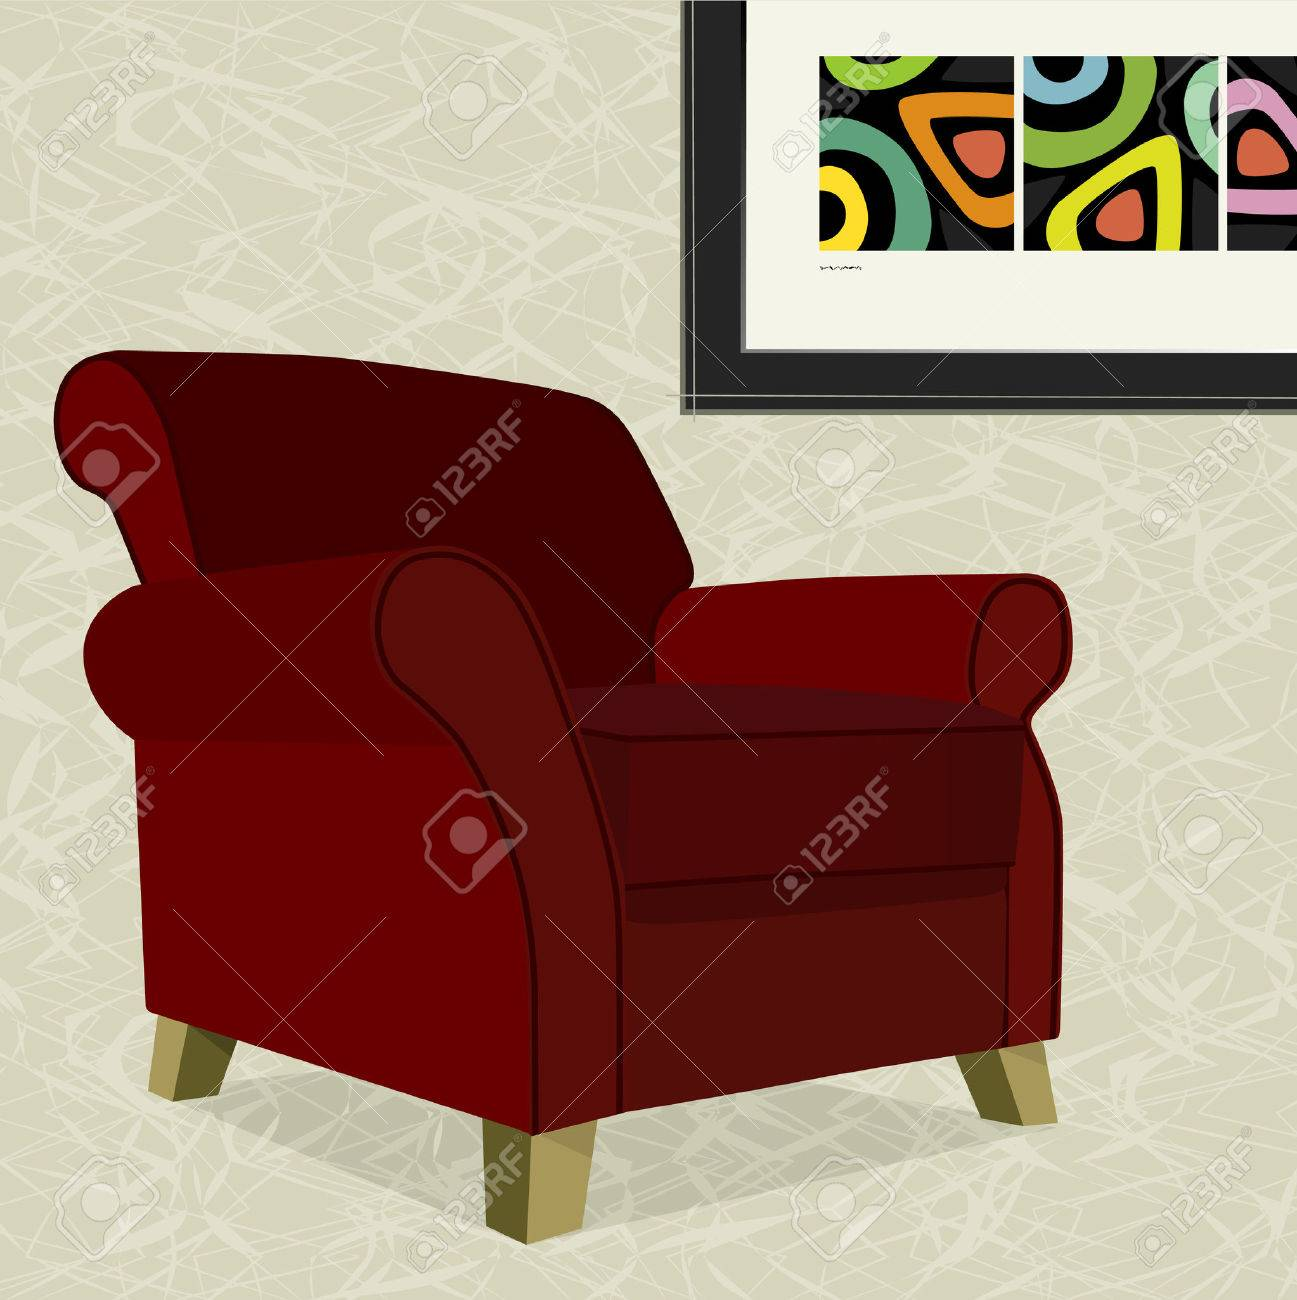 Whimsical comfy overstuffed armchair with abstract painting. Chair can be used without background. Stock Vector - 2085085